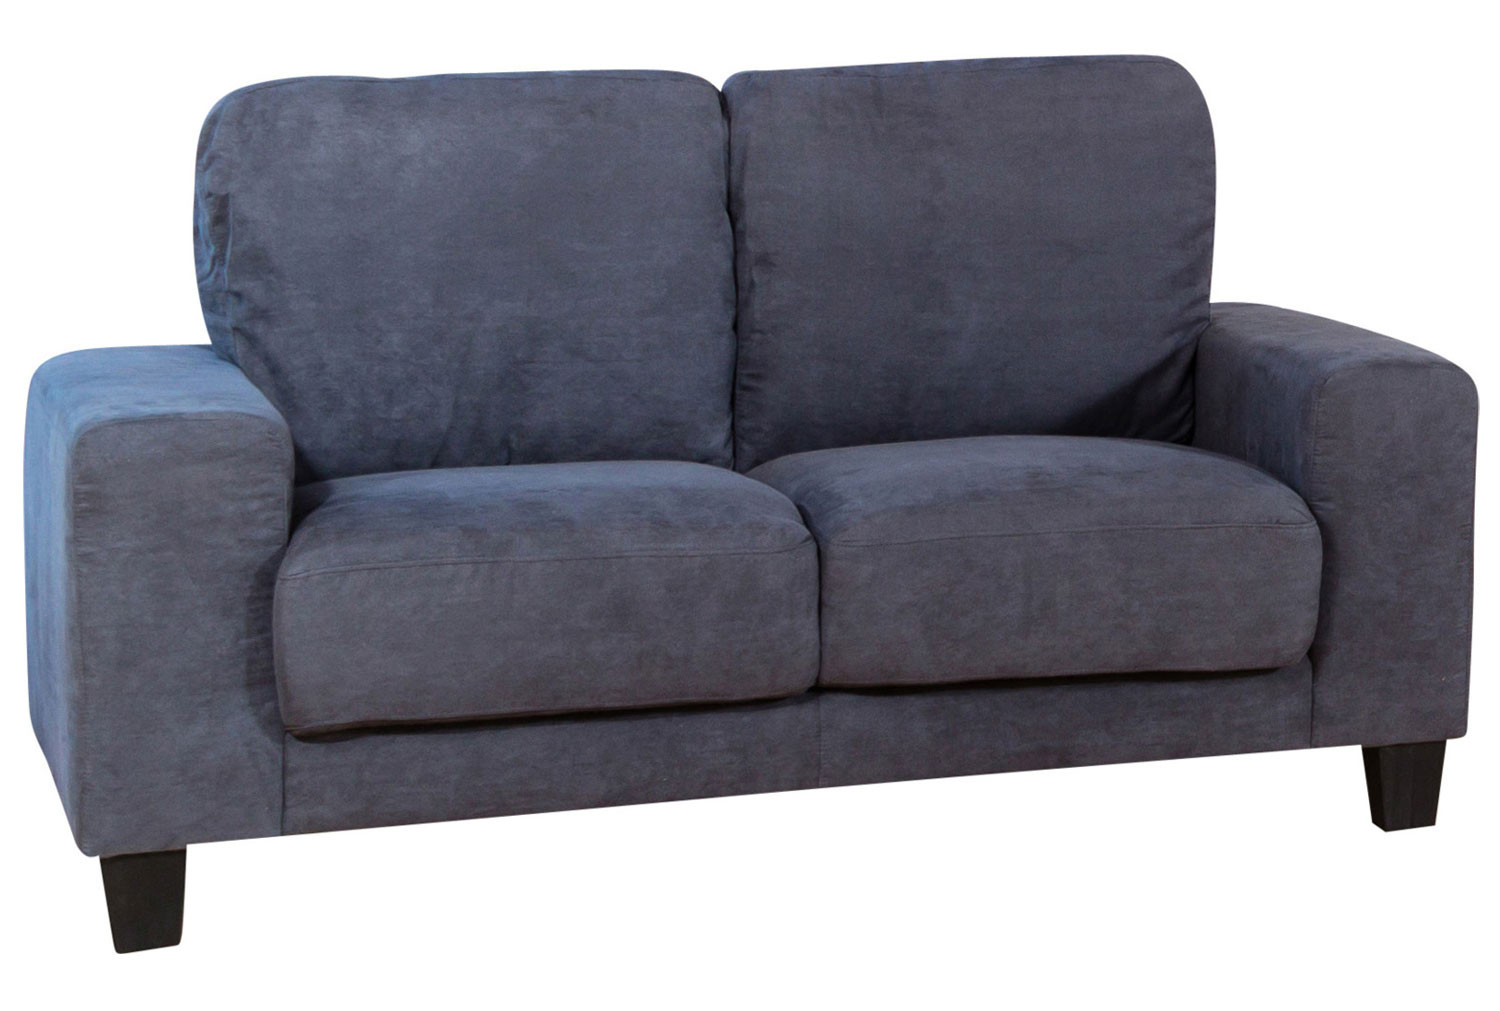 Isner Faux Suede 2 Seater Sofa